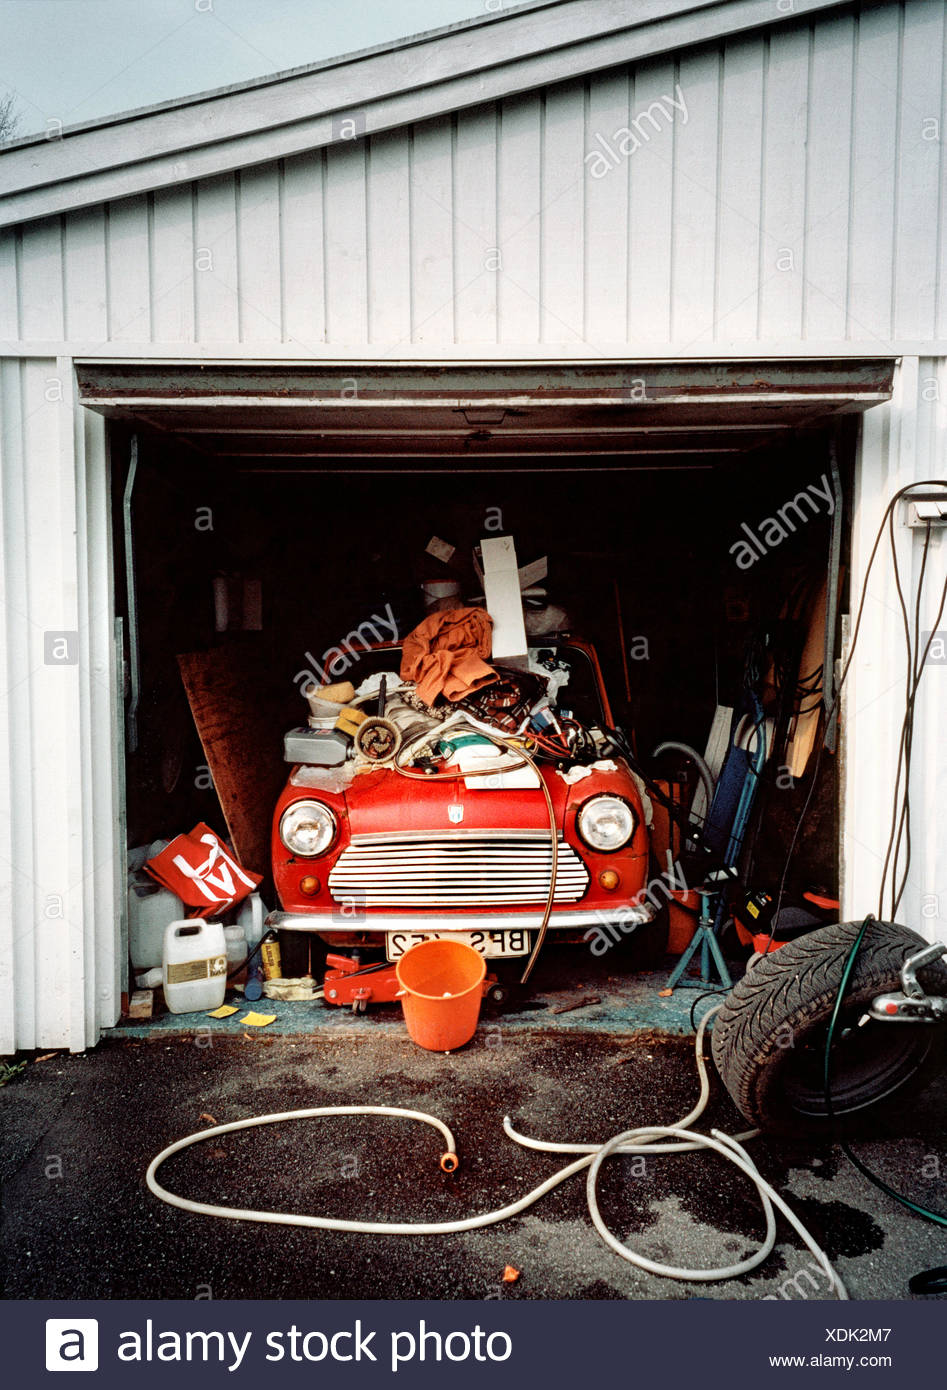 Old-fashioned car in messy garage - Stock Image